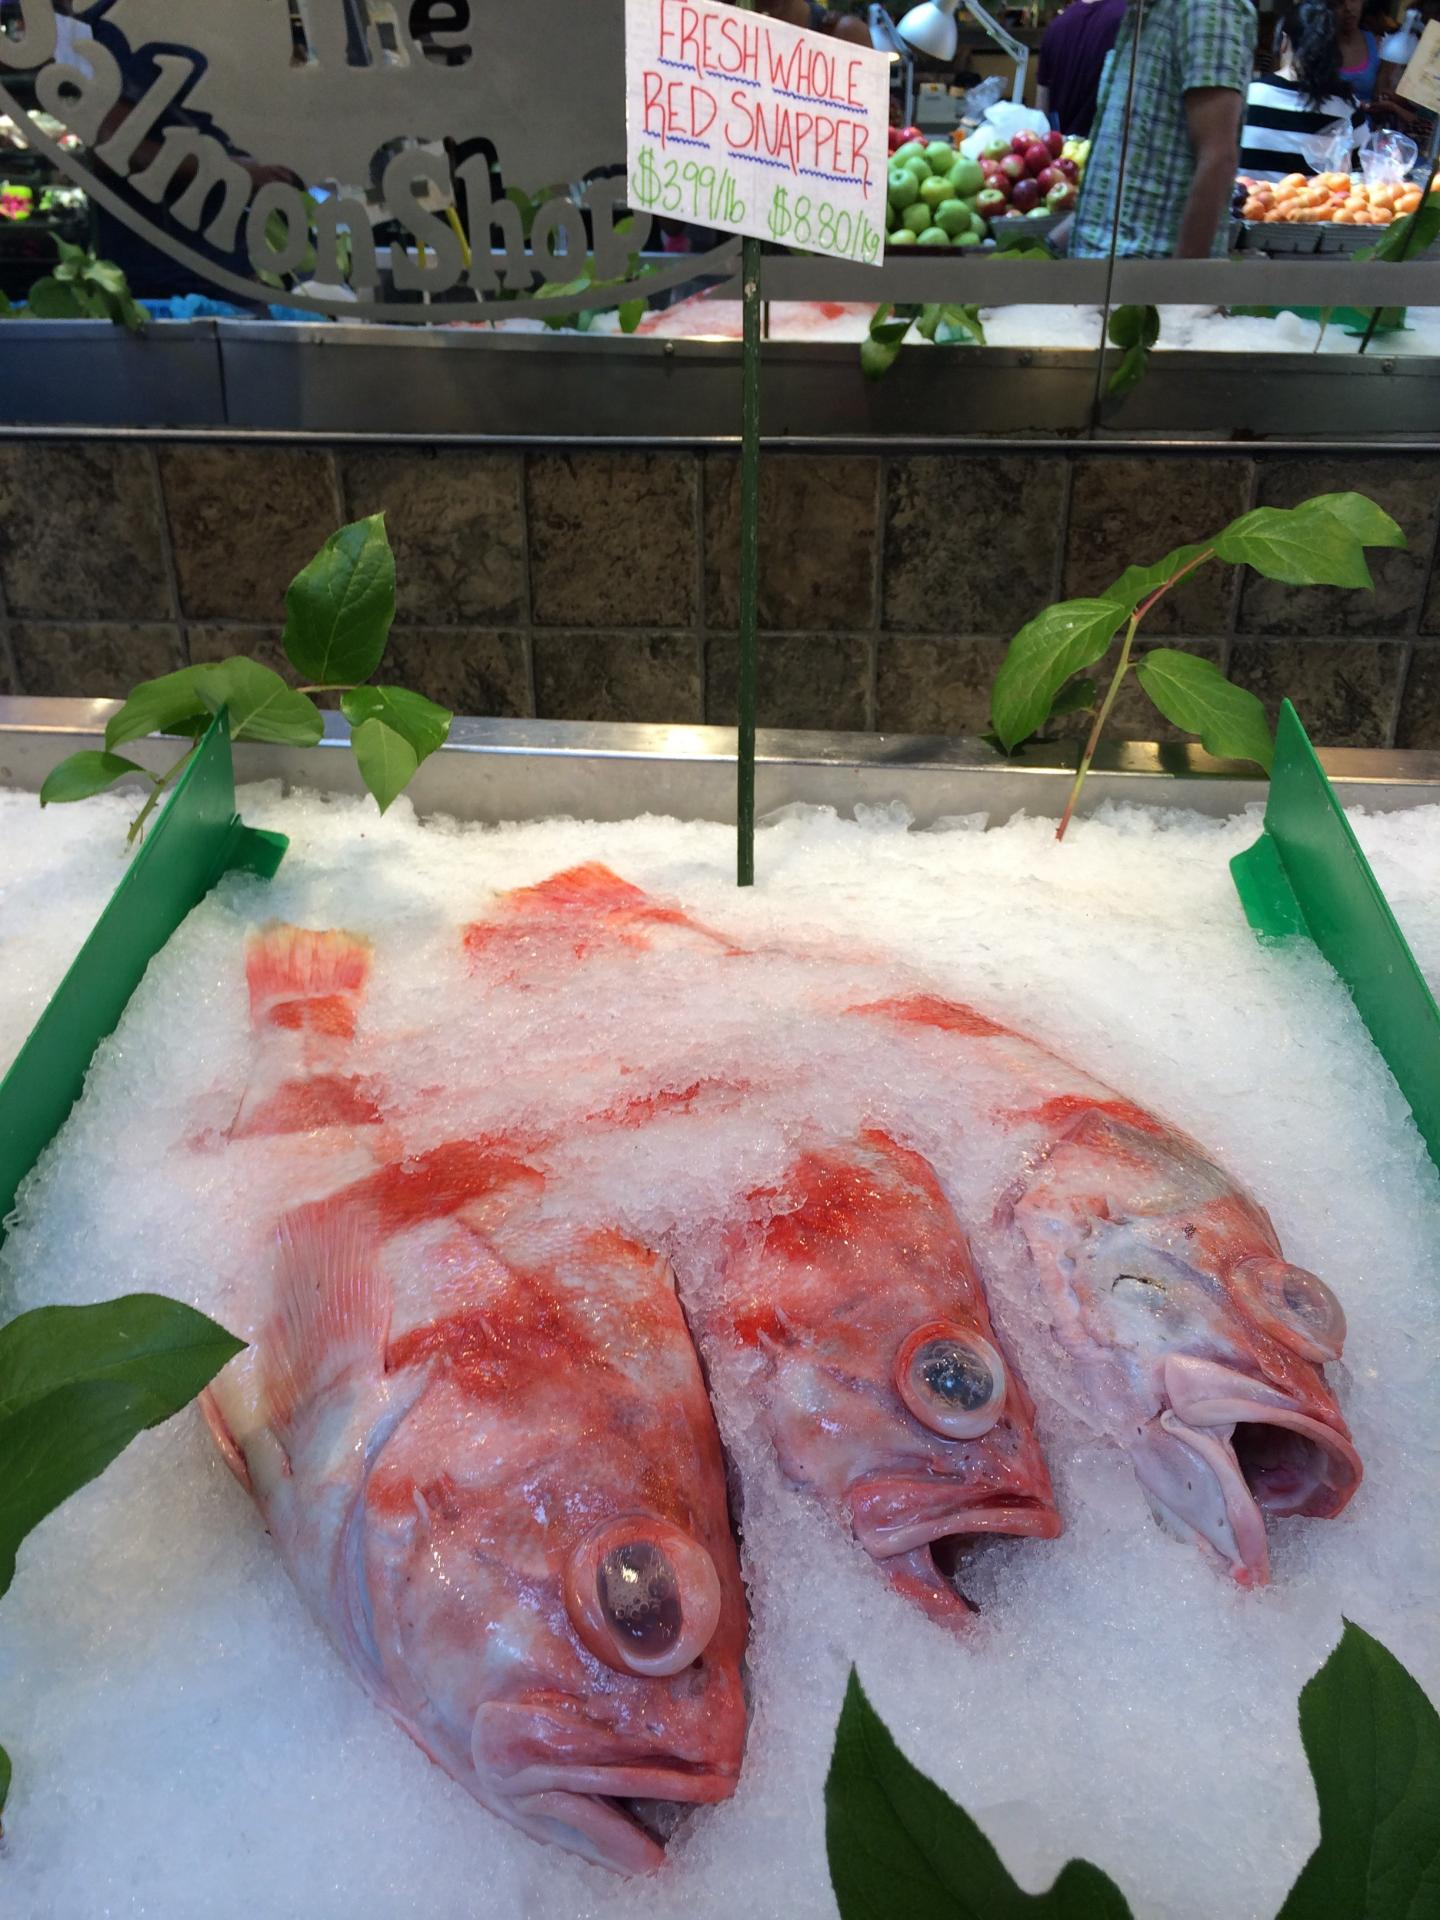 Mislabeled seafood may be more sustainable, new study finds